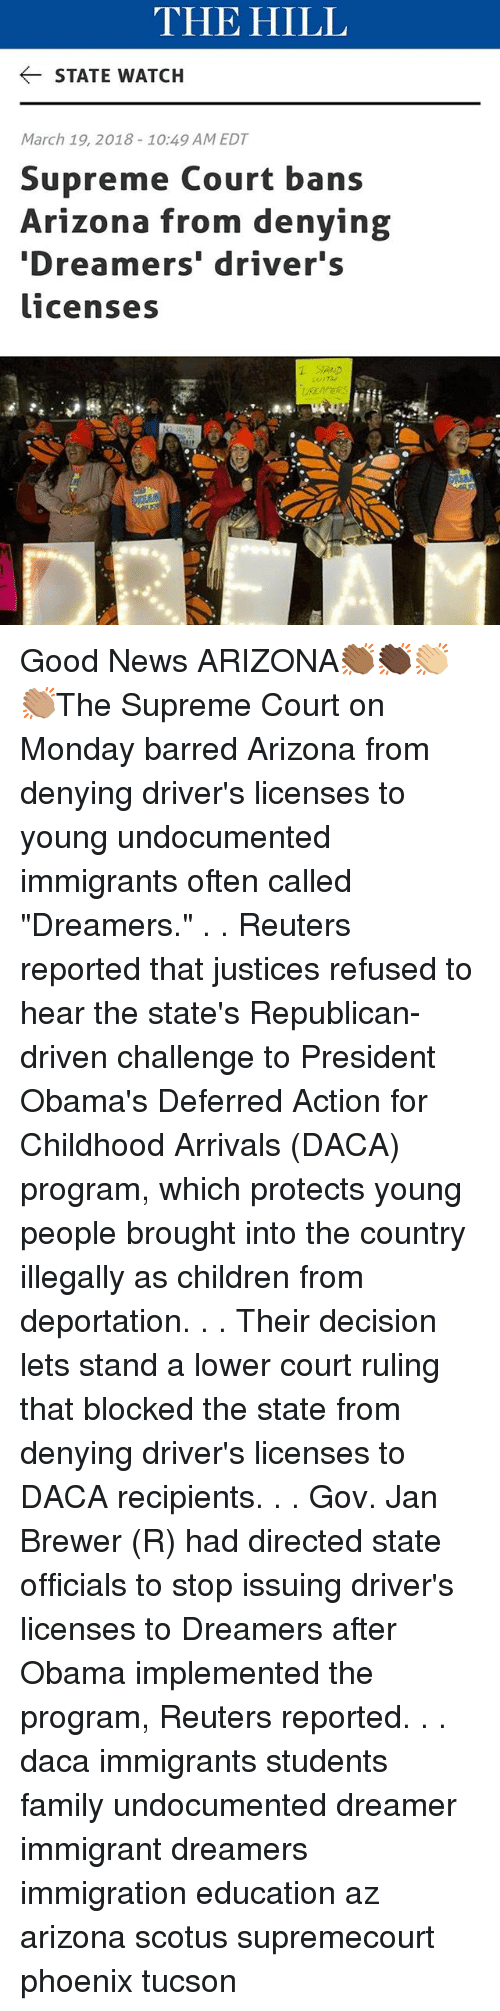 "Children, Family, and Memes: THE HILL  STATE WATCH  March 19, 2018-10:49 AM EDT  Supreme Court bans  Arizona from denying  Dreamers' driver's  licenses Good News ARIZONA👏🏾👏🏿👏🏼👏🏽The Supreme Court on Monday barred Arizona from denying driver's licenses to young undocumented immigrants often called ""Dreamers."" . . Reuters reported that justices refused to hear the state's Republican-driven challenge to President Obama's Deferred Action for Childhood Arrivals (DACA) program, which protects young people brought into the country illegally as children from deportation. . . Their decision lets stand a lower court ruling that blocked the state from denying driver's licenses to DACA recipients. . . Gov. Jan Brewer (R) had directed state officials to stop issuing driver's licenses to Dreamers after Obama implemented the program, Reuters reported. . . daca immigrants students family undocumented dreamer immigrant dreamers immigration education az arizona scotus supremecourt phoenix tucson"